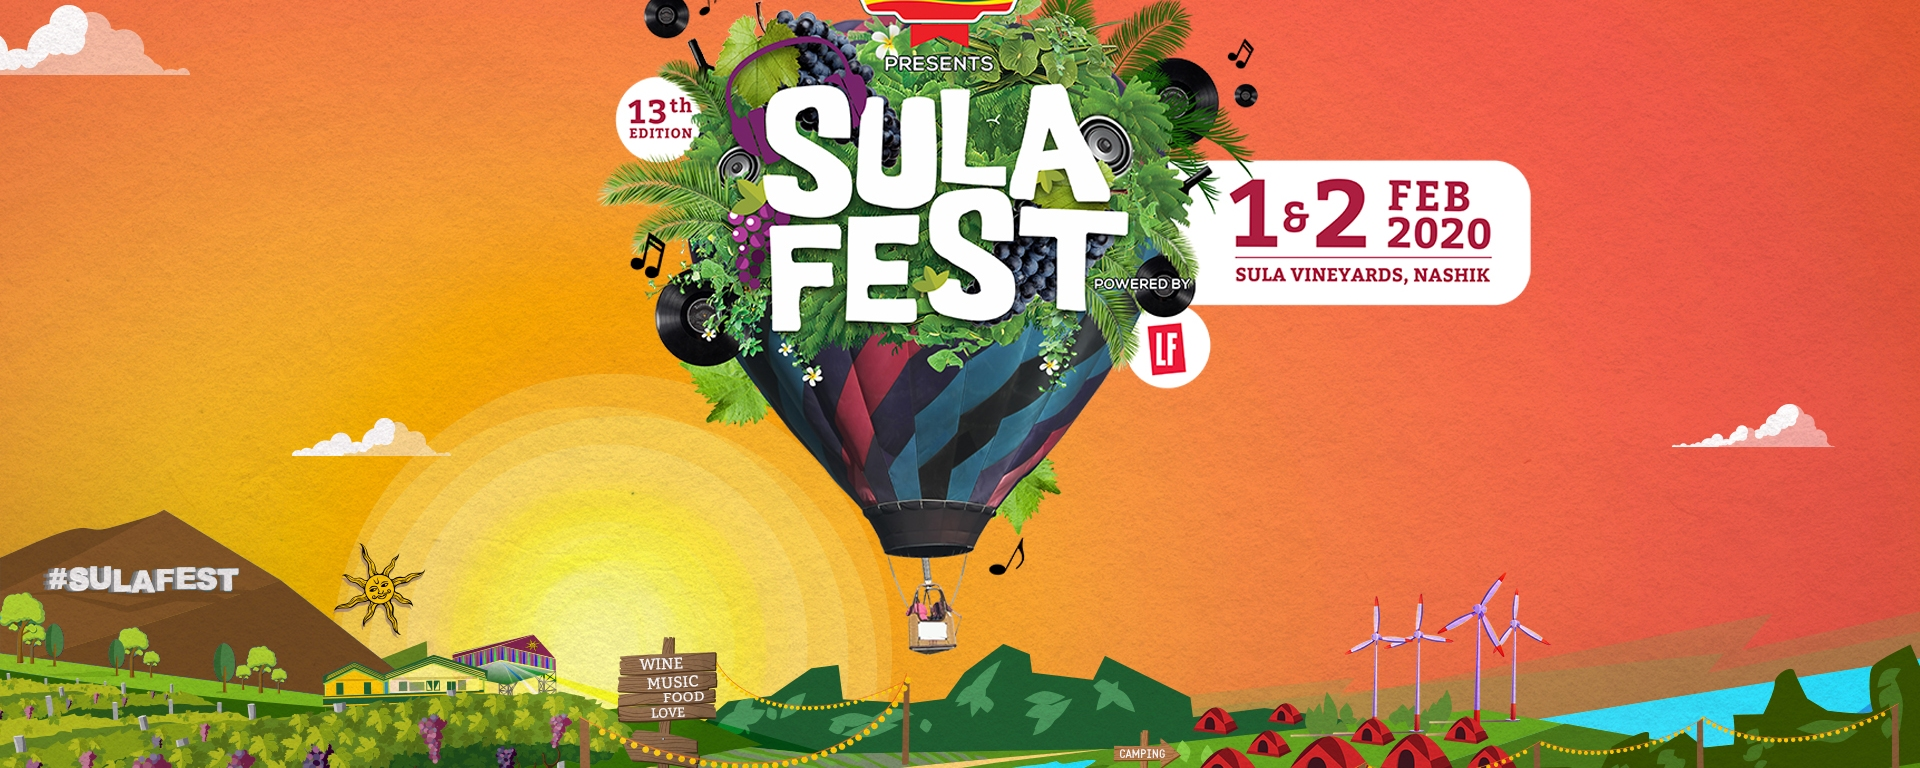 Sulafest Sula Vineyards Nashik